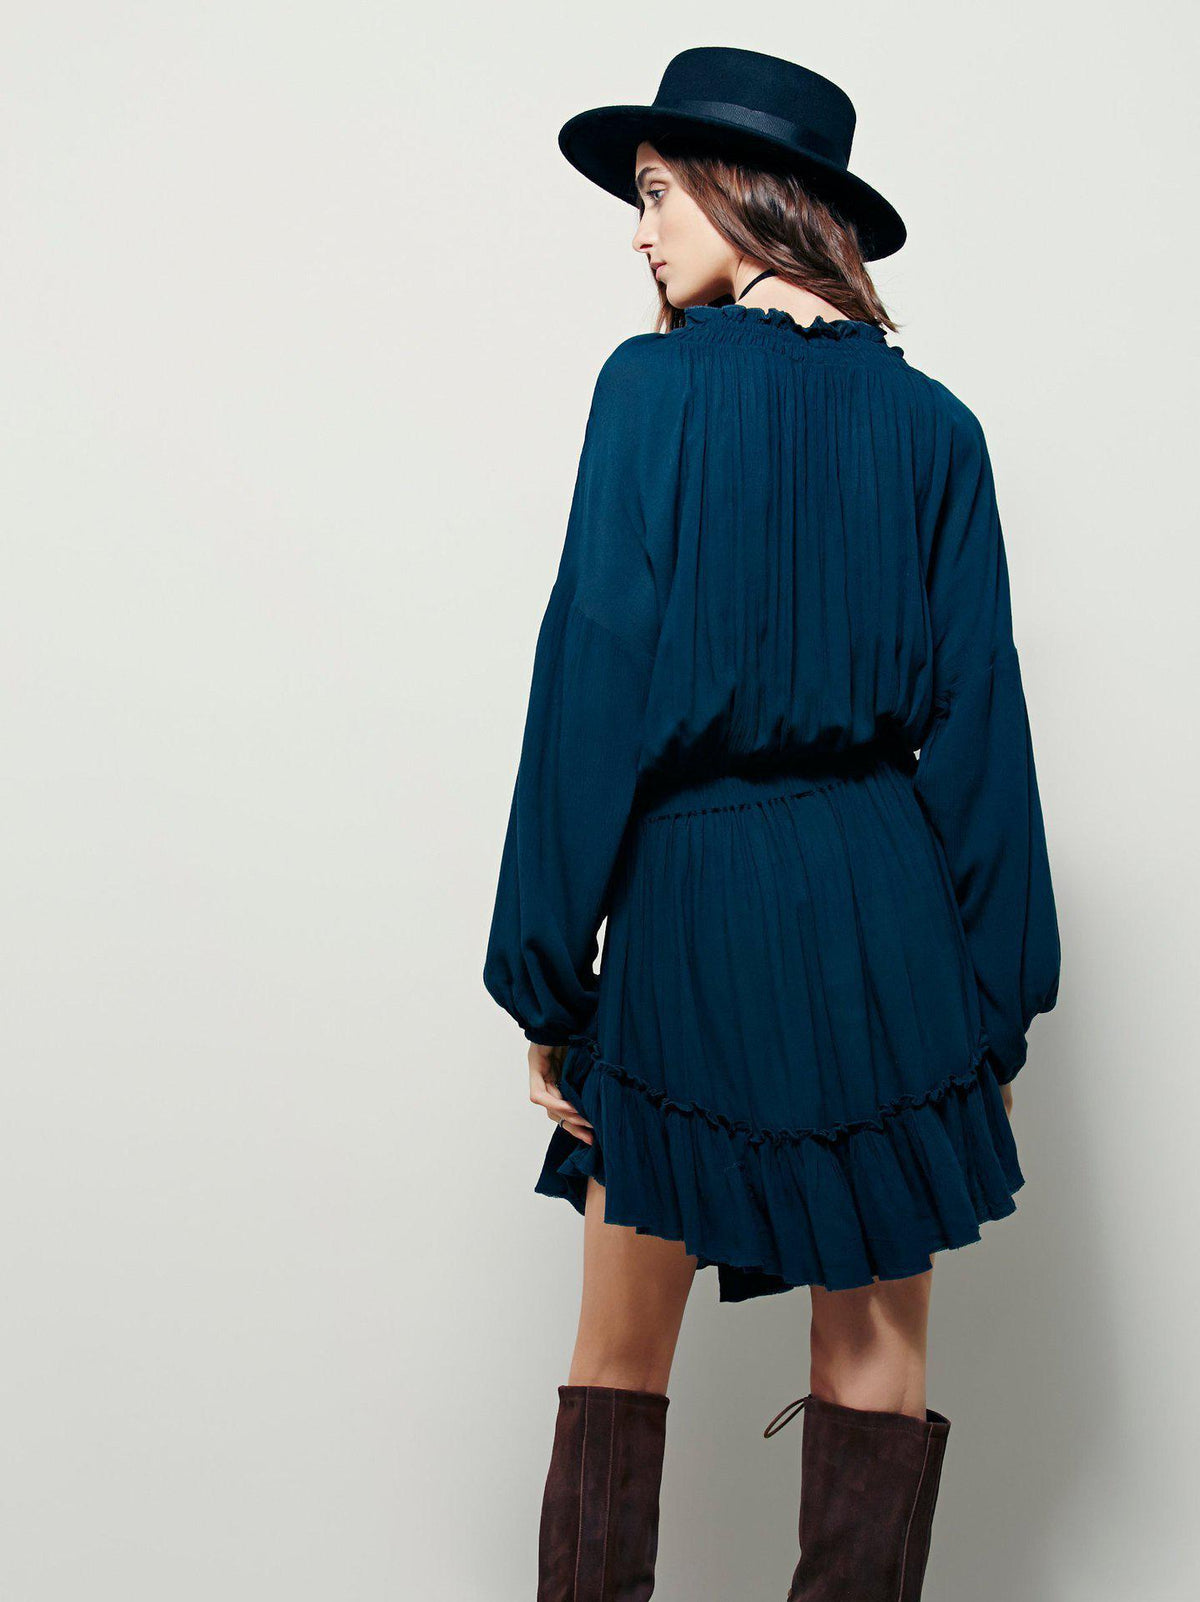 Bohemian style irregular dress hollow out loose casual fashion dress ruffles draped short dress women's dress-Dress-SheSimplyShops